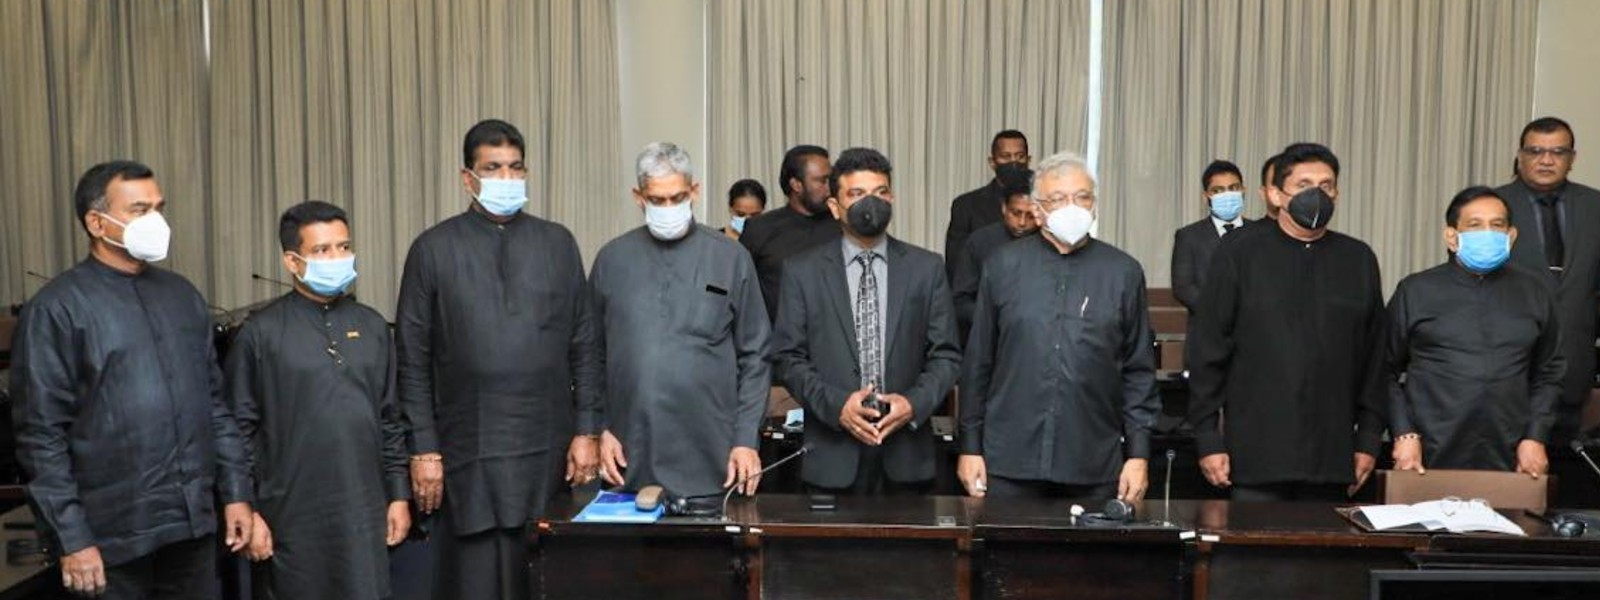 (PICTURES) Opposition goes all black to remember 2019 Attack victims